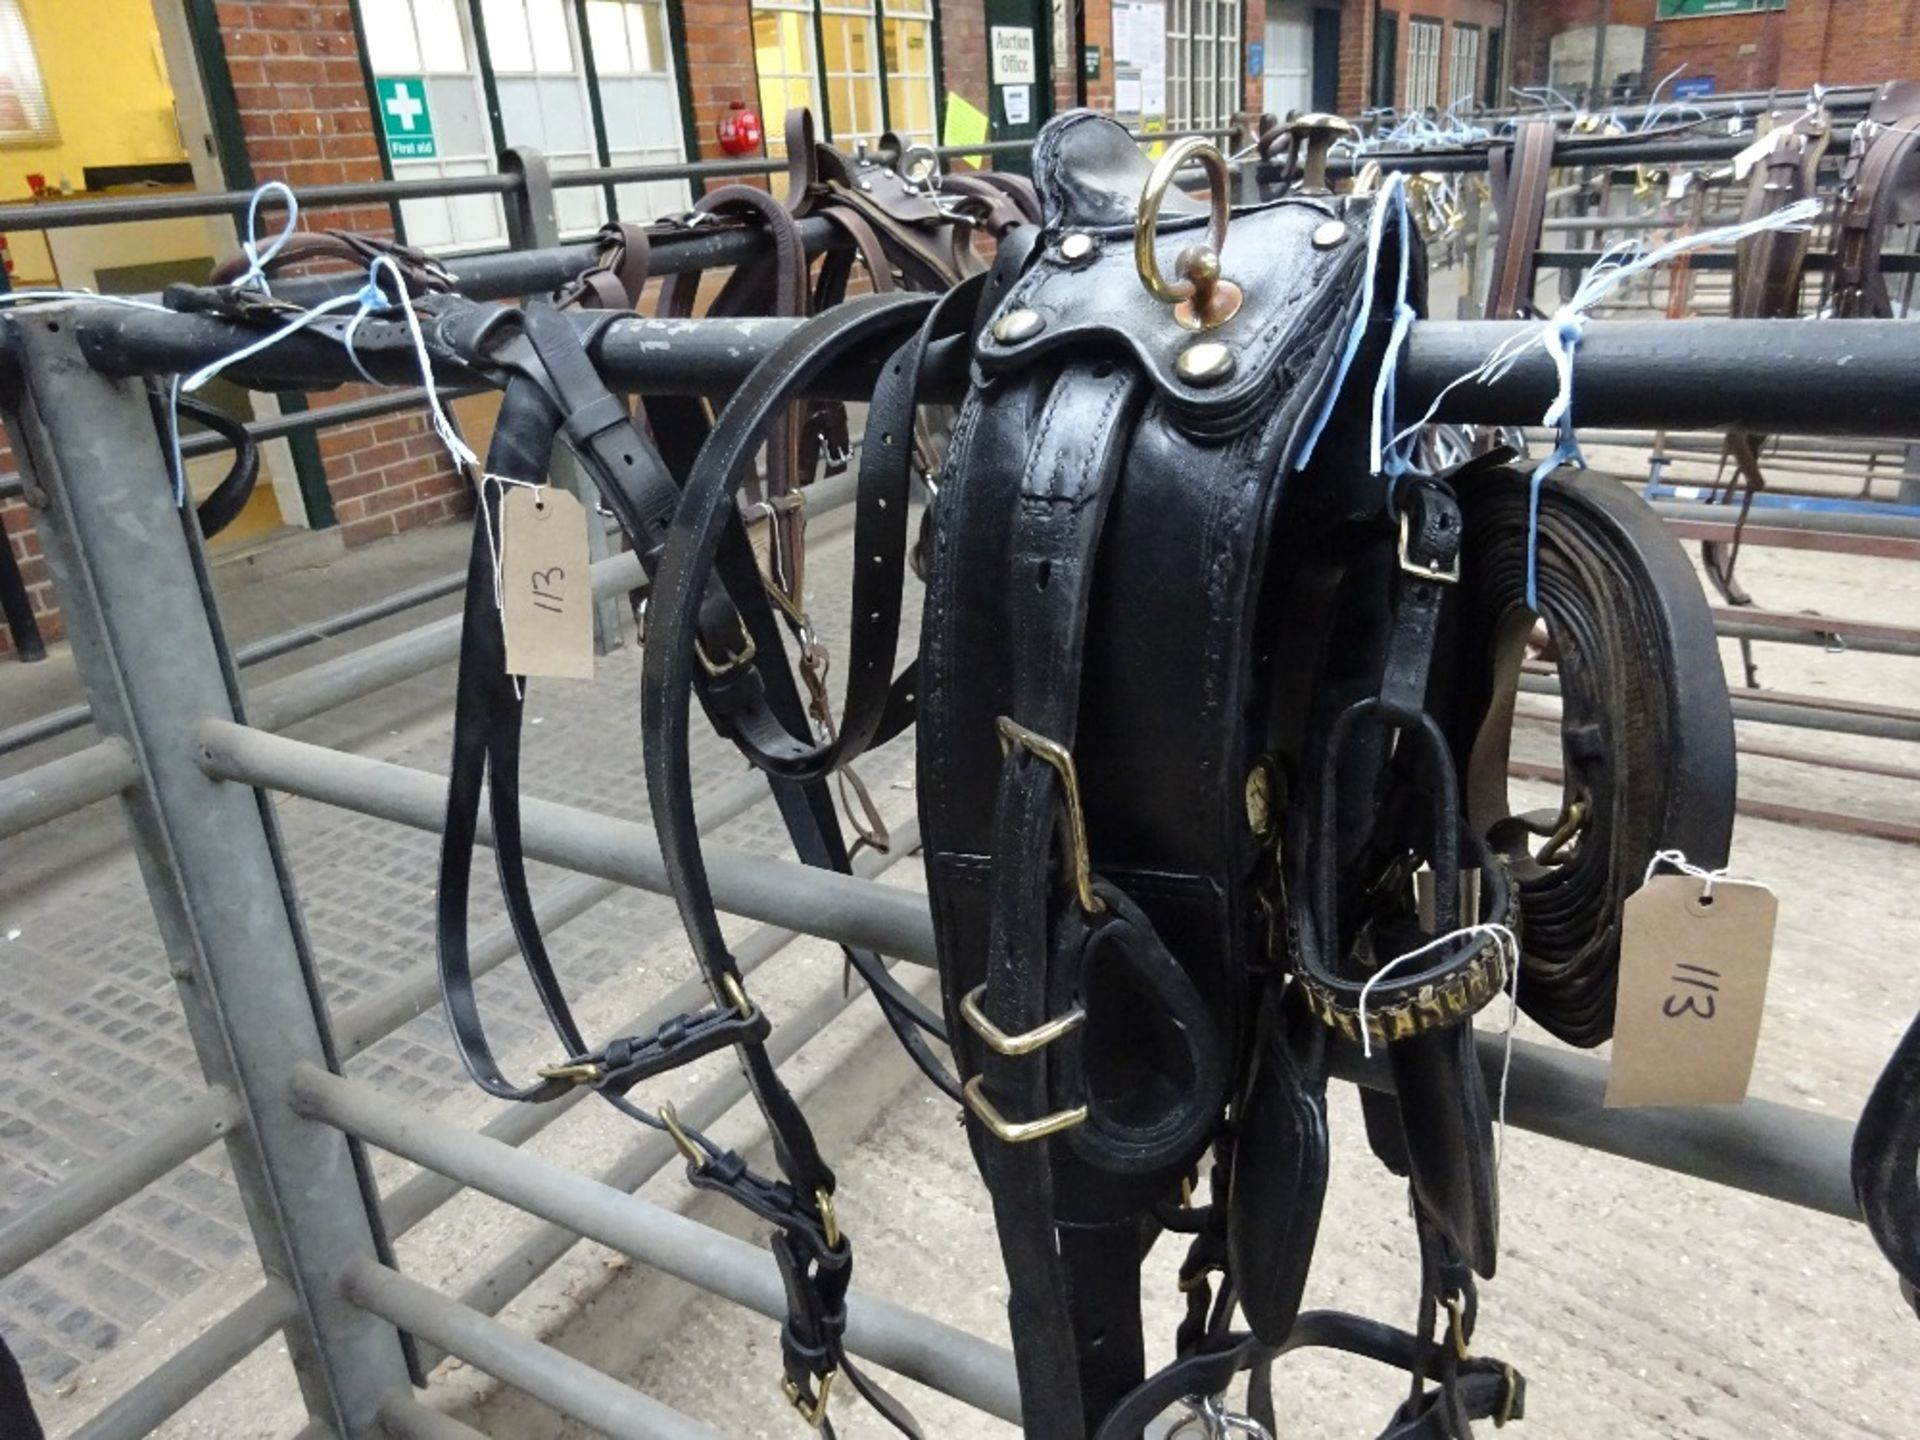 Set of cob size English working harness with collar approx. 21 x 8 inches - carries VAT - Image 3 of 3